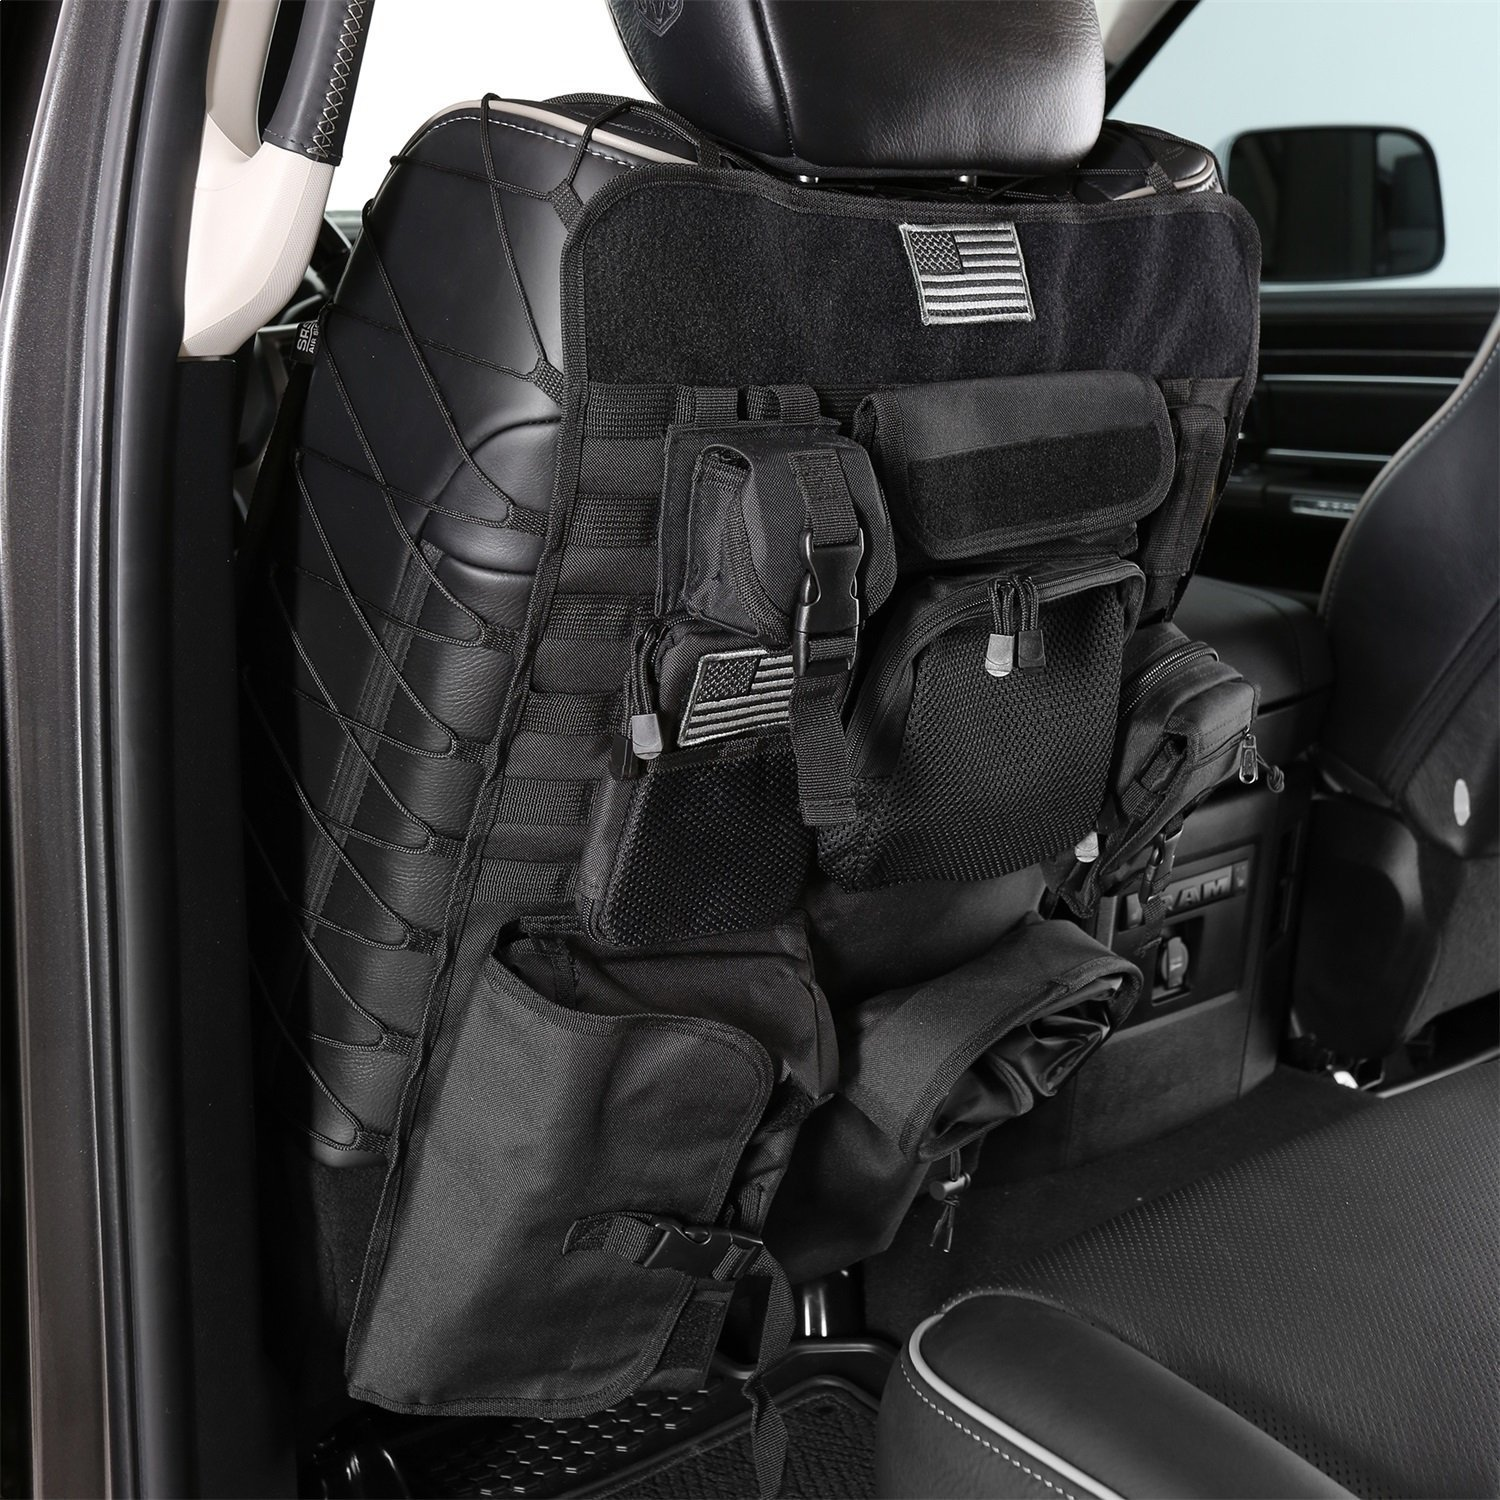 3m 36900 Interior Protection Automotive Seat Cover